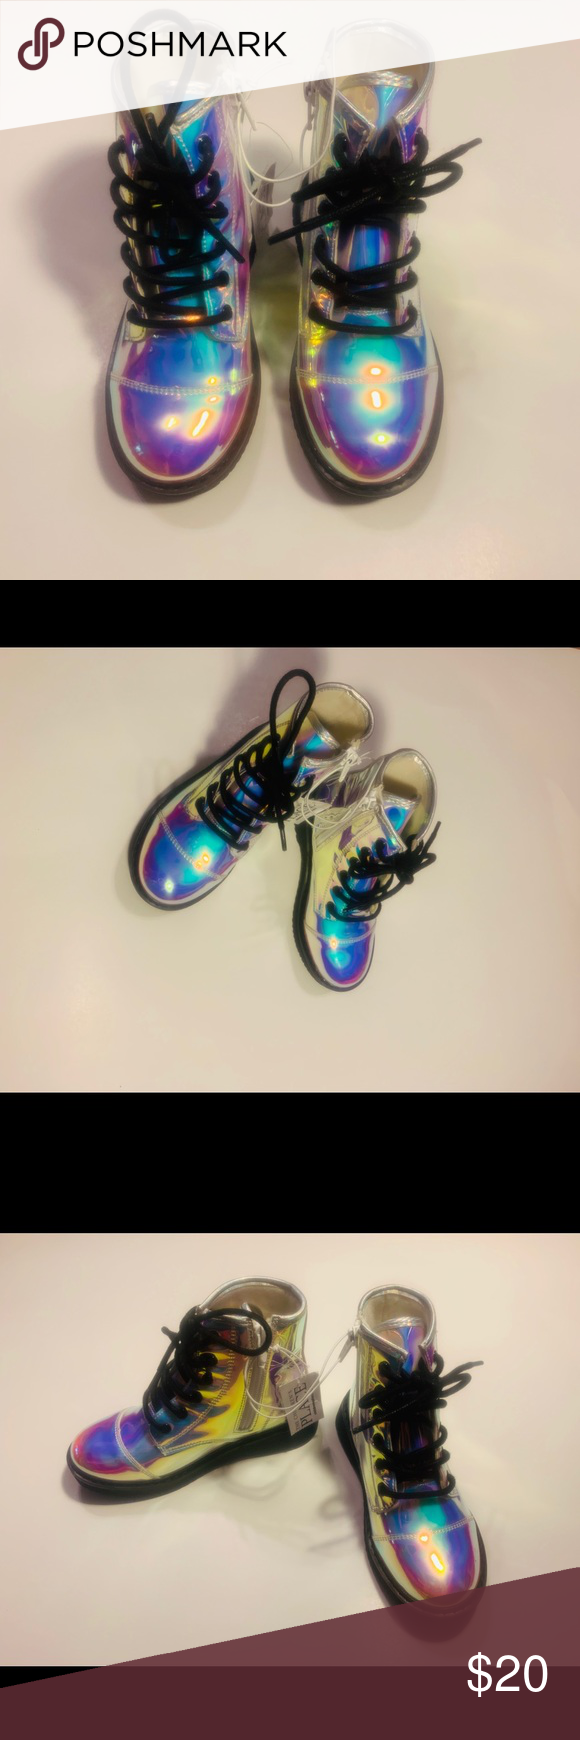 NWT The Children's Place Holographic Boots Size 11 Brand new